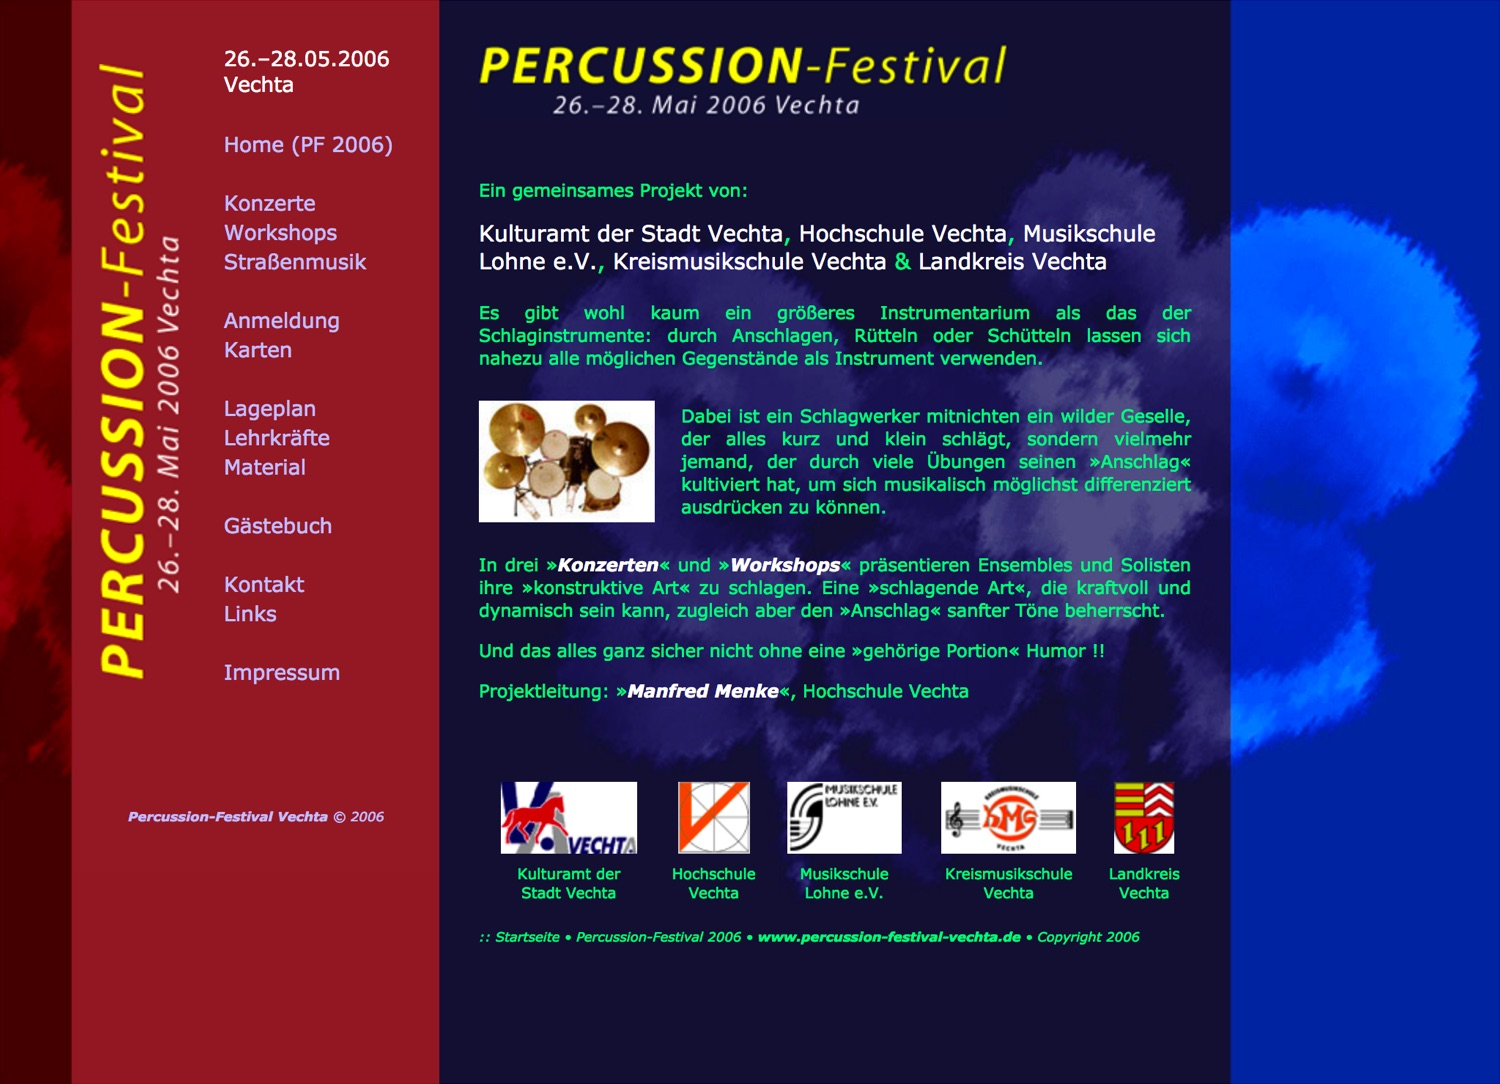 Percussion-Festival Vechta · Homepage 2006